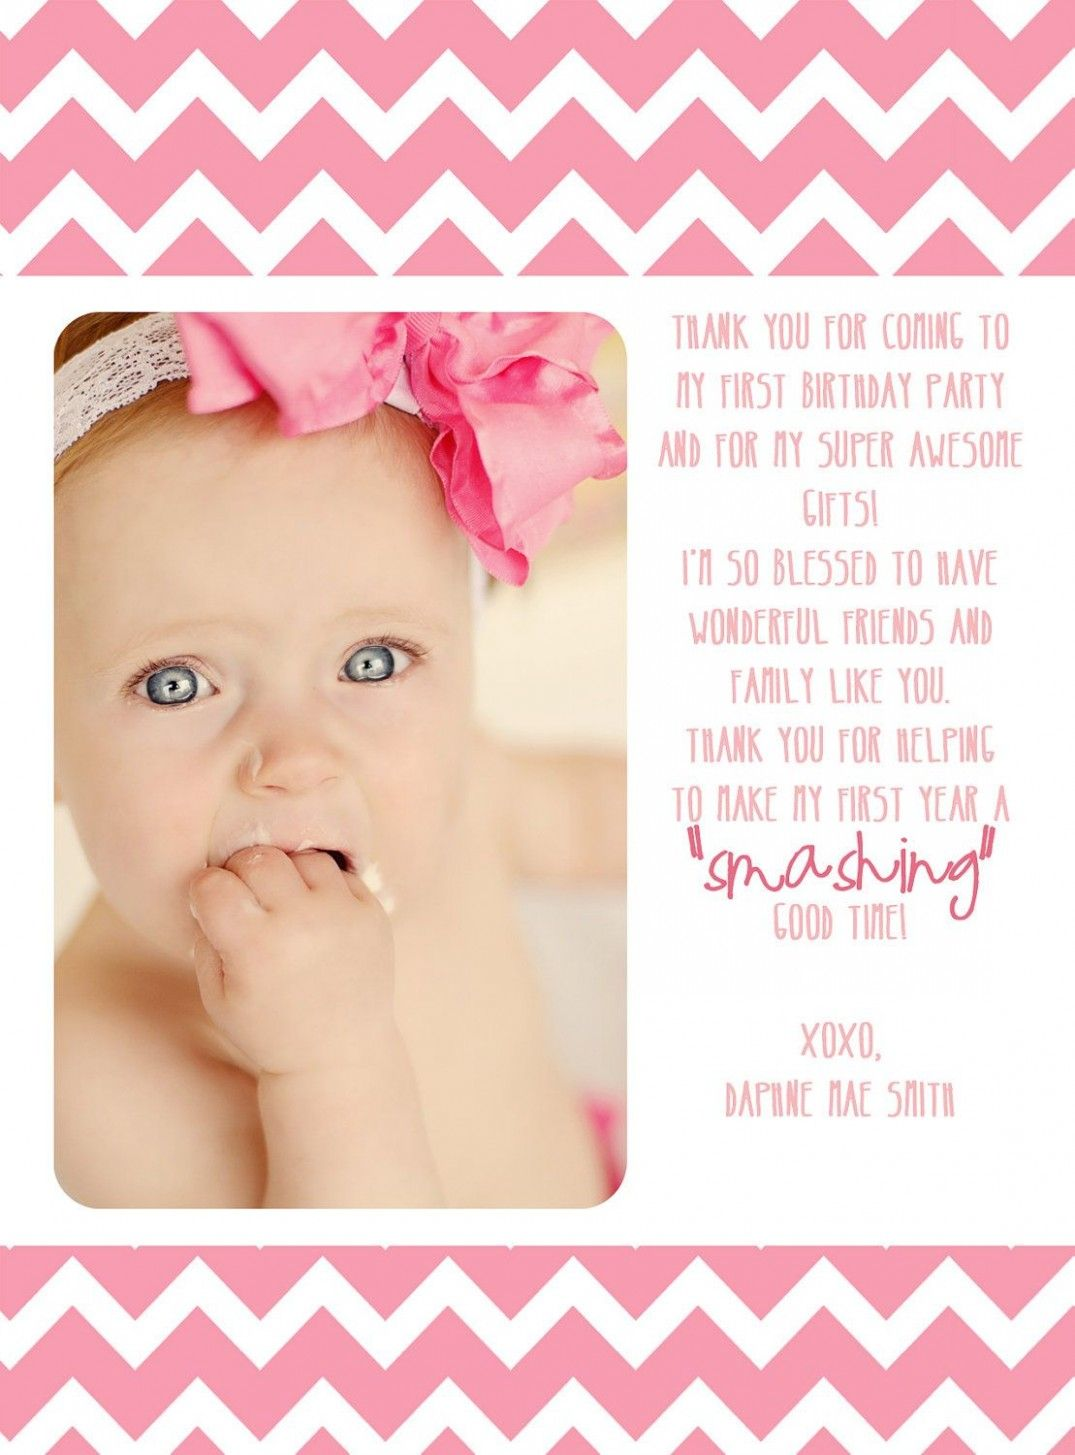 8 Top First Birthday Thank You In 2021 Birthday Thank You Cards Kids Birthday Invitation Card Birthday Thank You